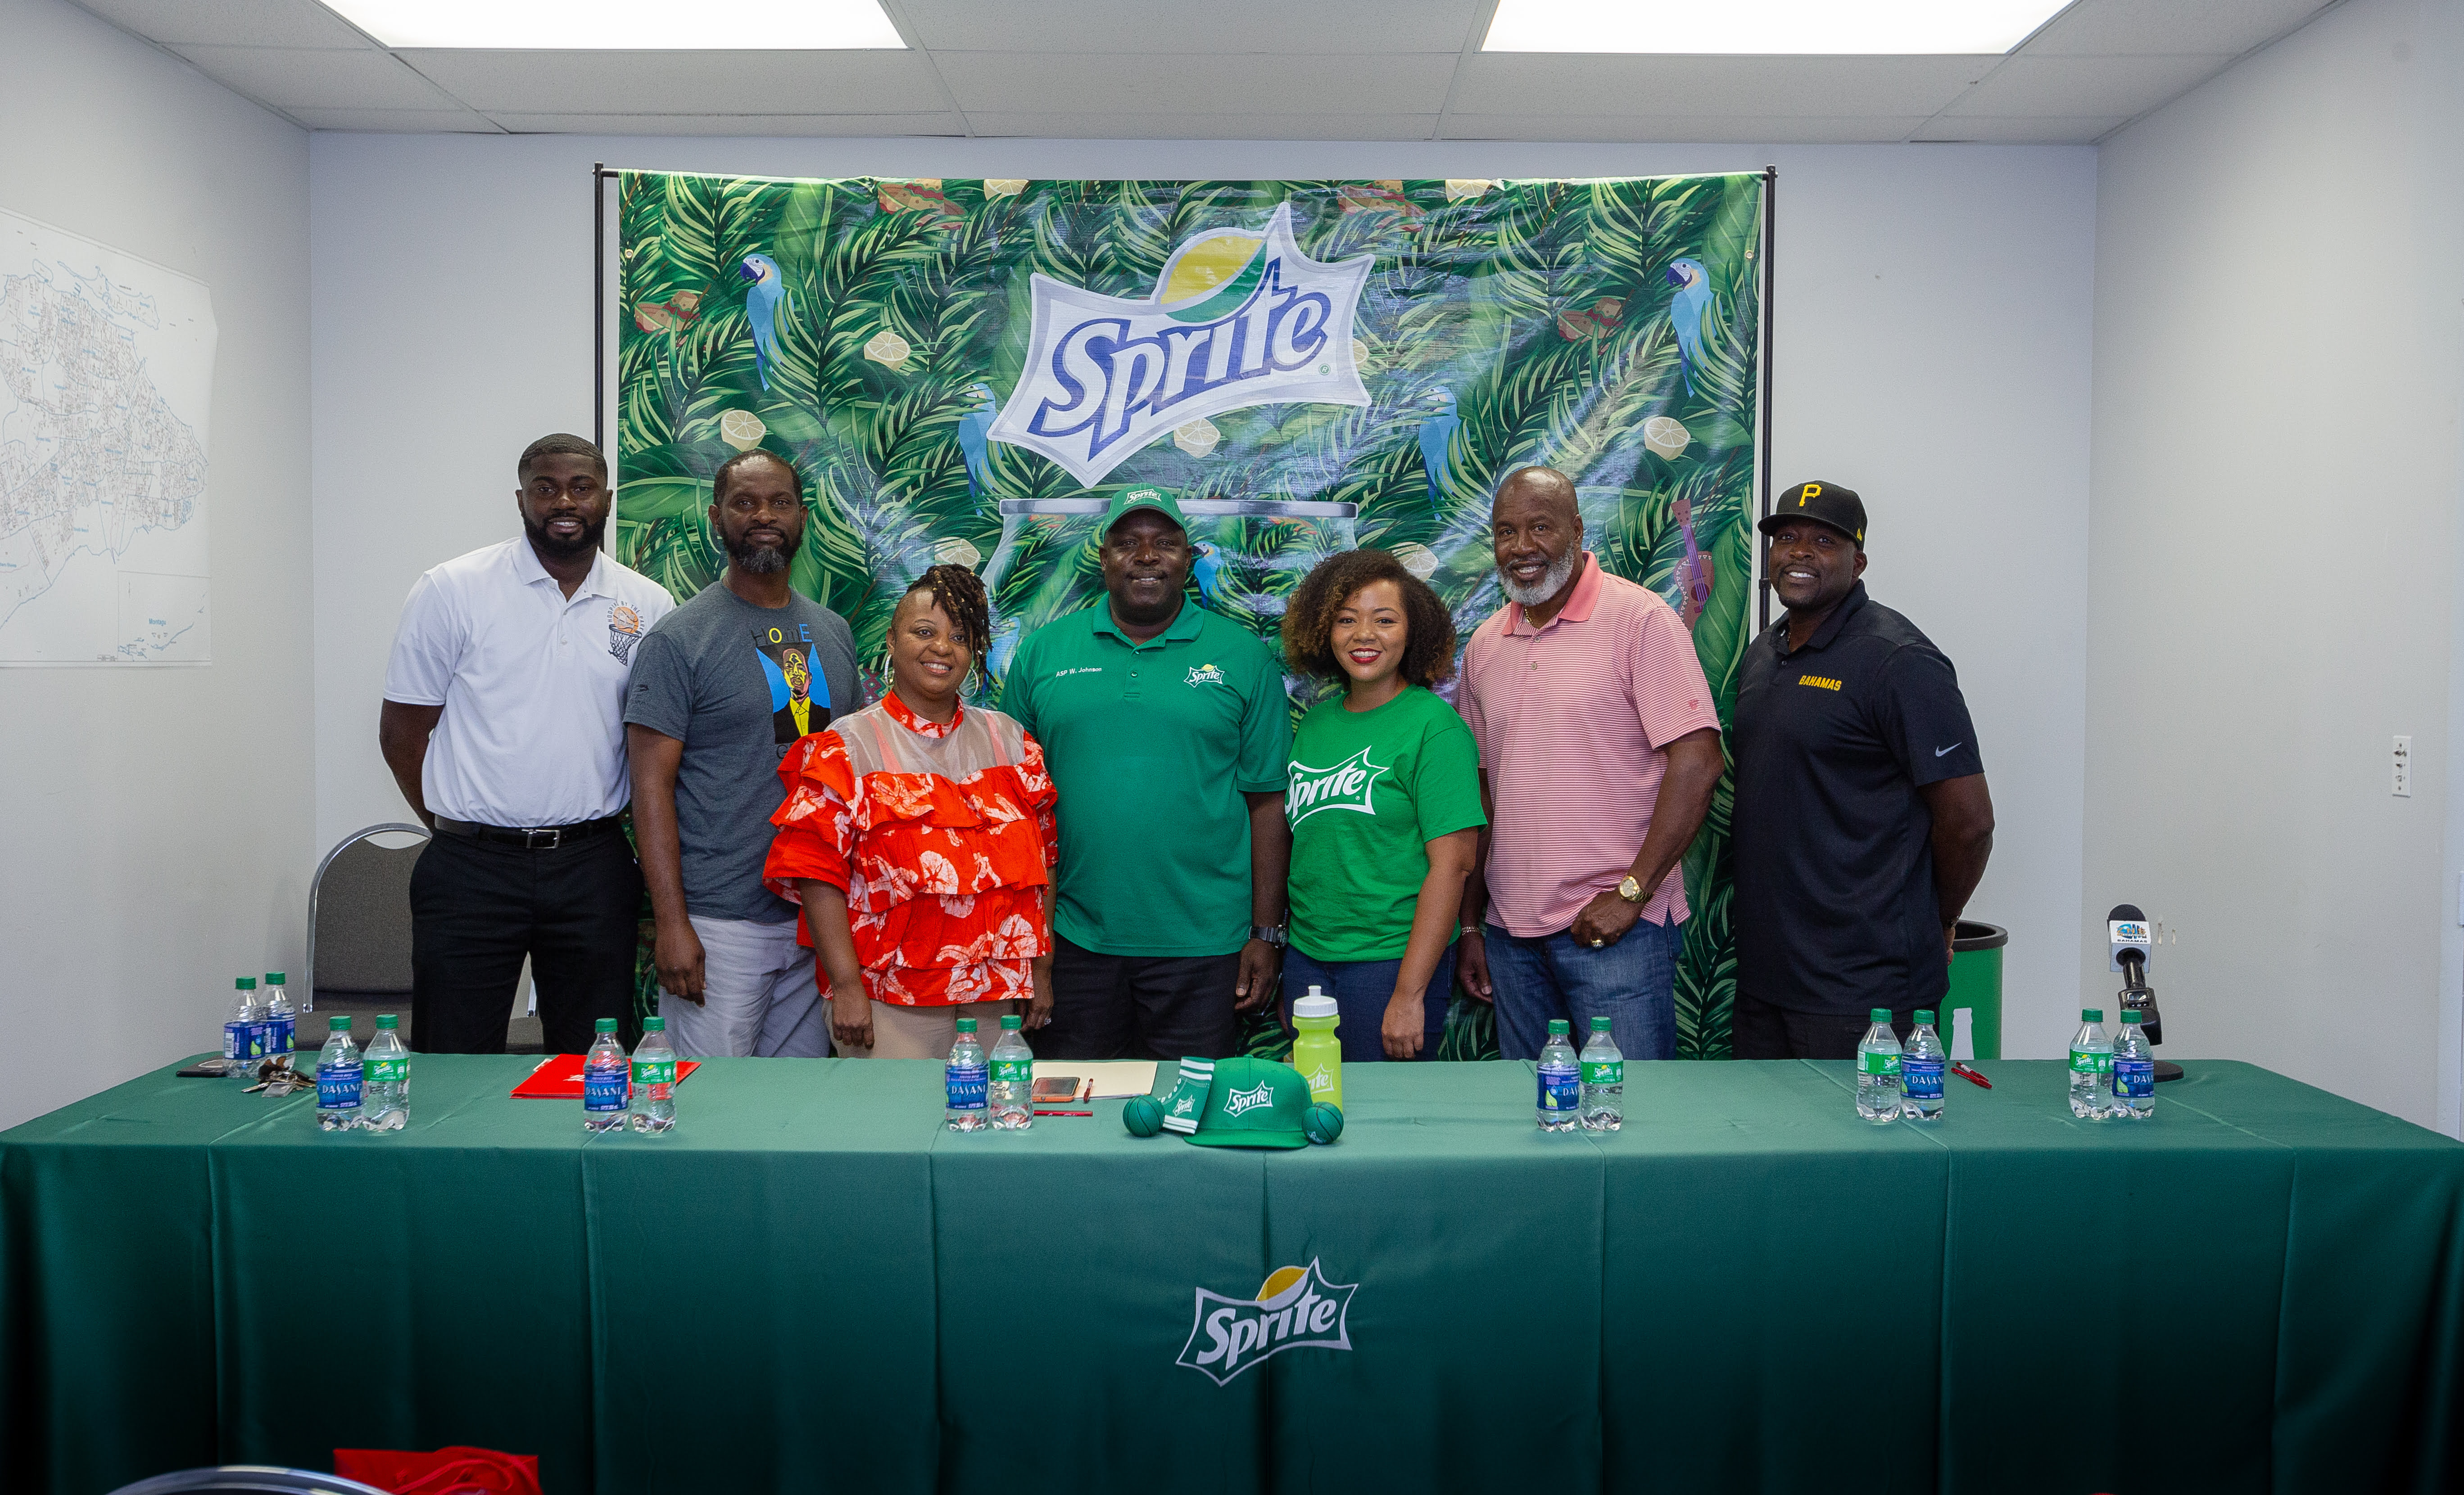 CBC Wraps Up Sprite Summer of Basketball With Hooping By The Park Sponsorship